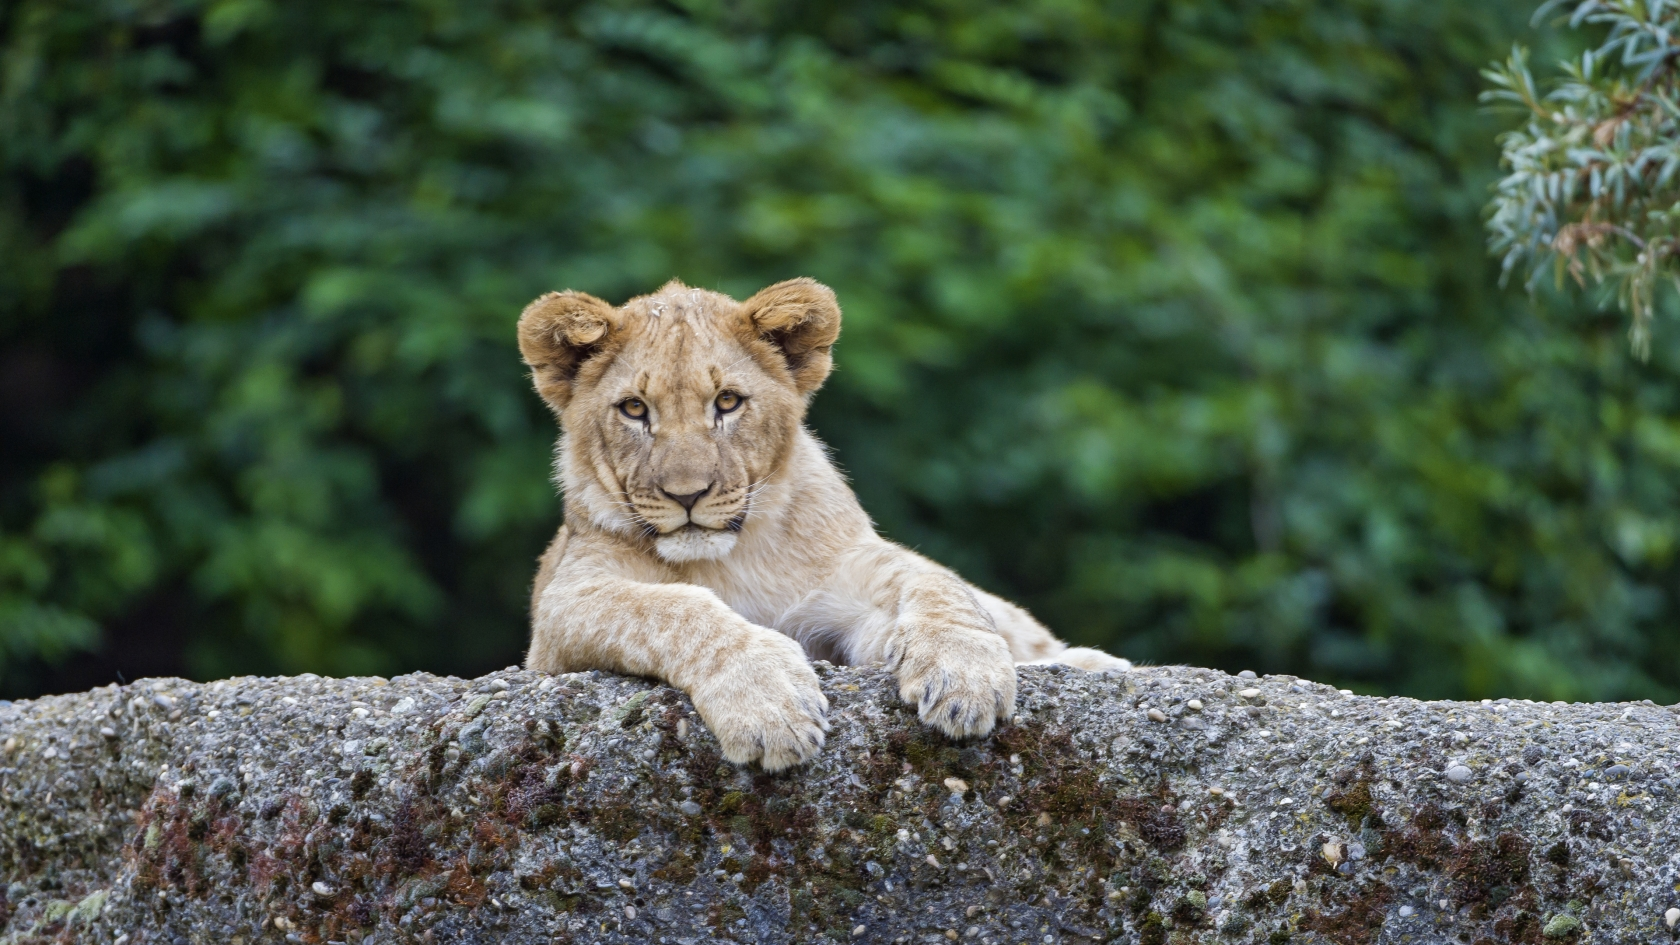 Young Cute Lion for 1680 x 945 HDTV resolution